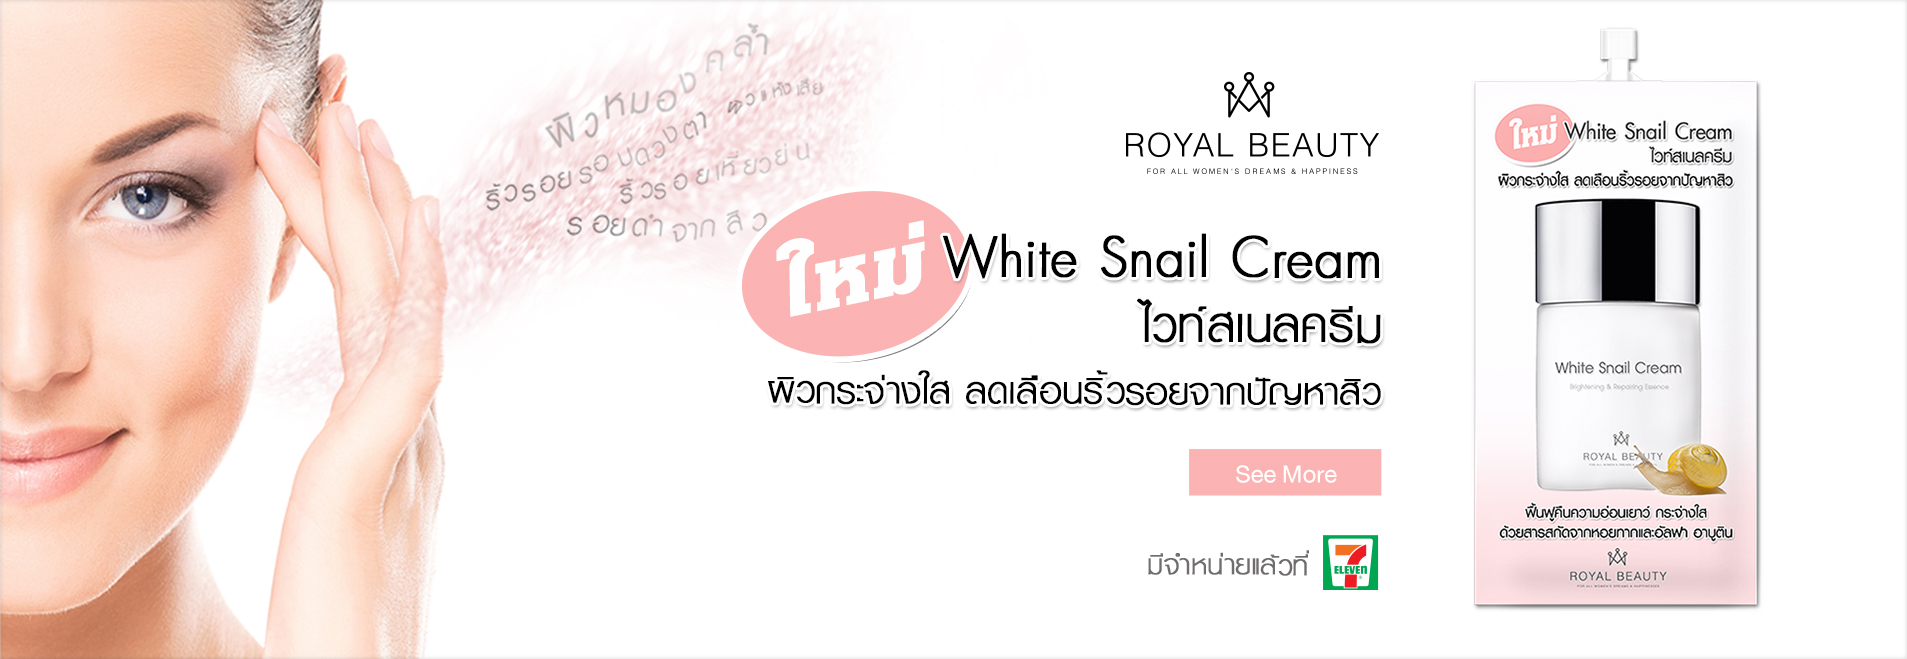 Royal Beauty White Snail Cream